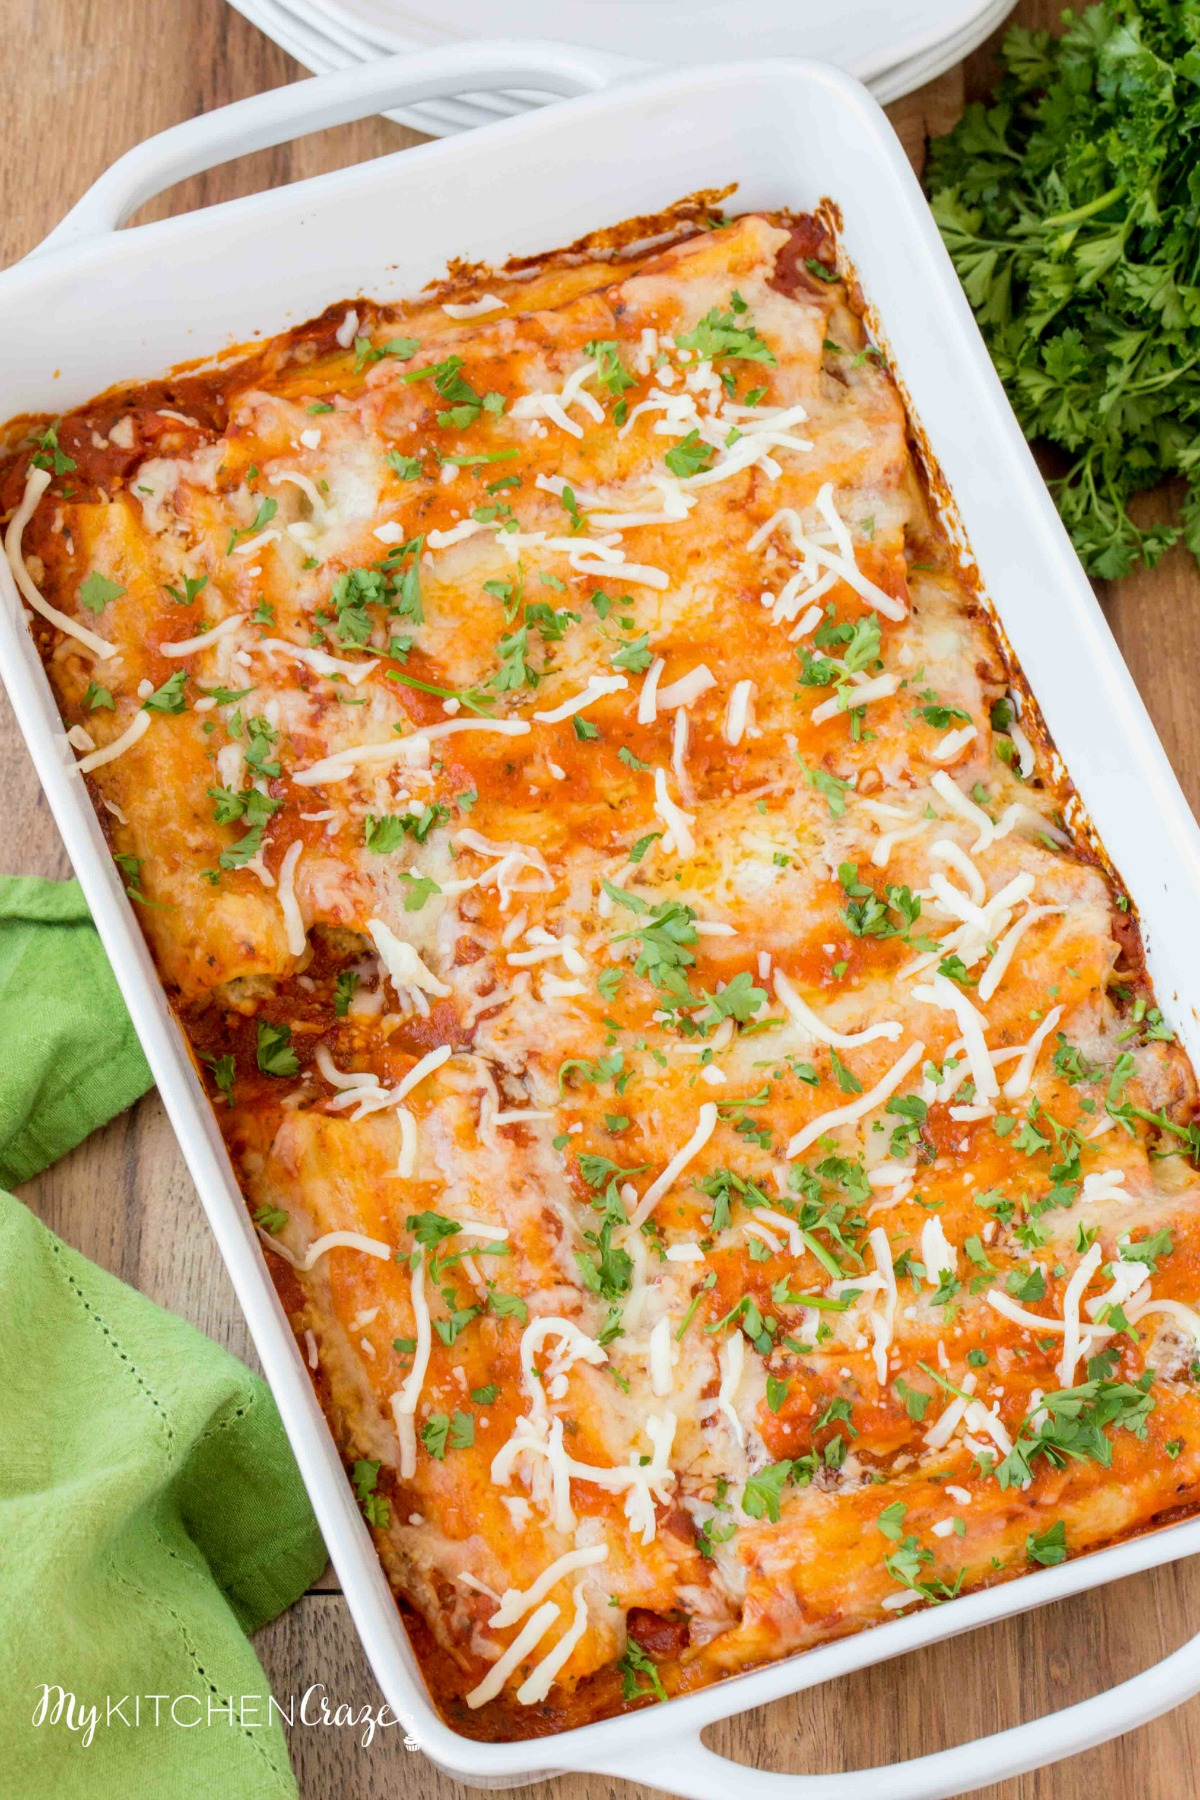 You won't be able to resist trying this Homemade Manicotti!